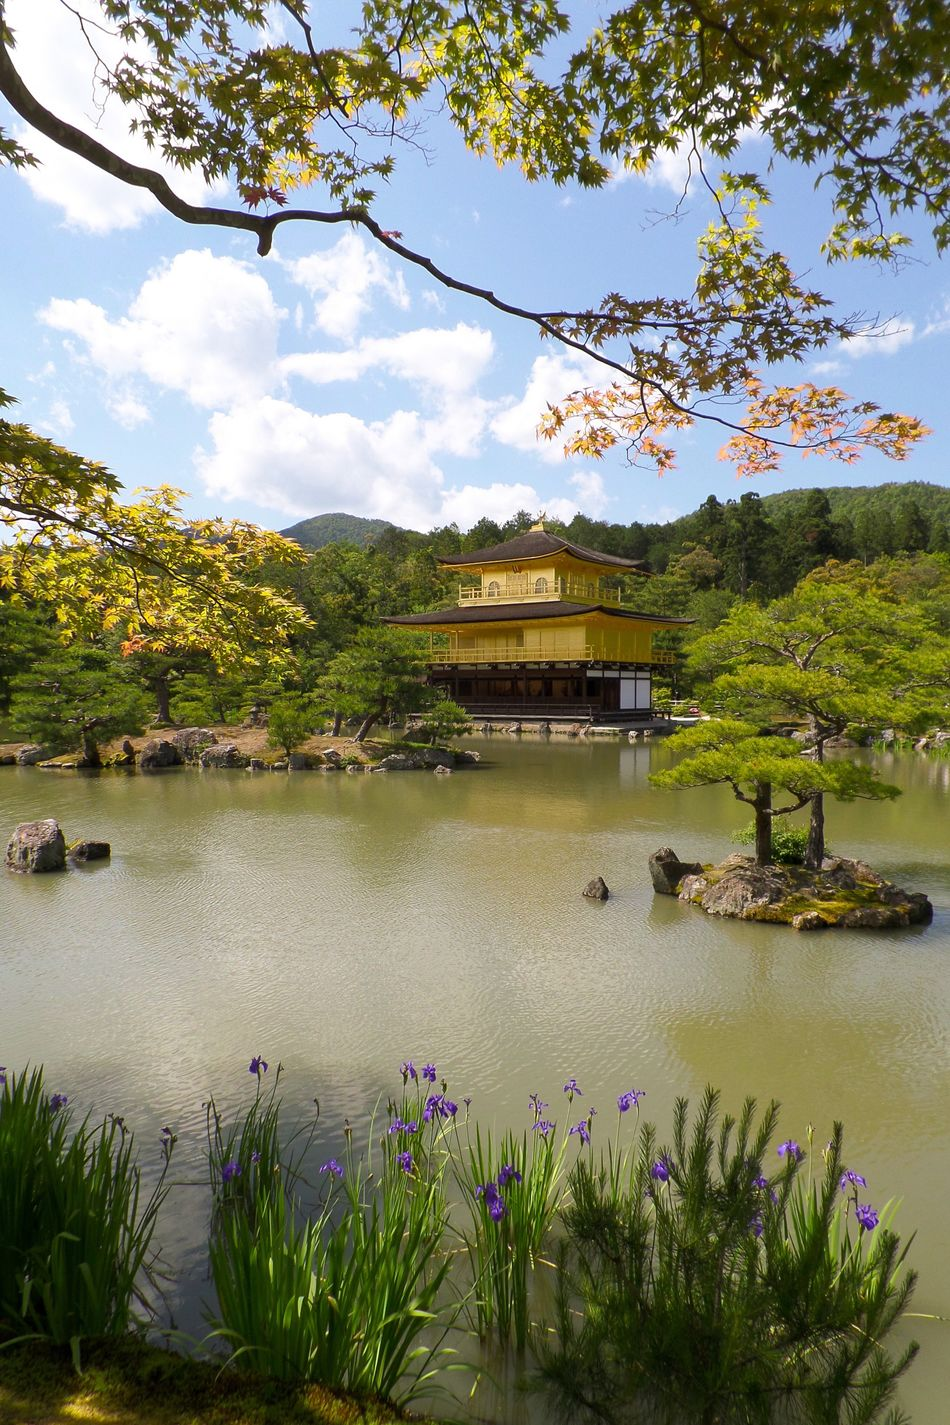 Kyoto Tree Travel Destinations Nature Lake Flower Scenics Sky Water Day Outdoors Tranquility No People Architecture Beauty In Nature Mountain Plant Vacations Growth Building Exterior Branch Golden Temple Kyoto, Japan